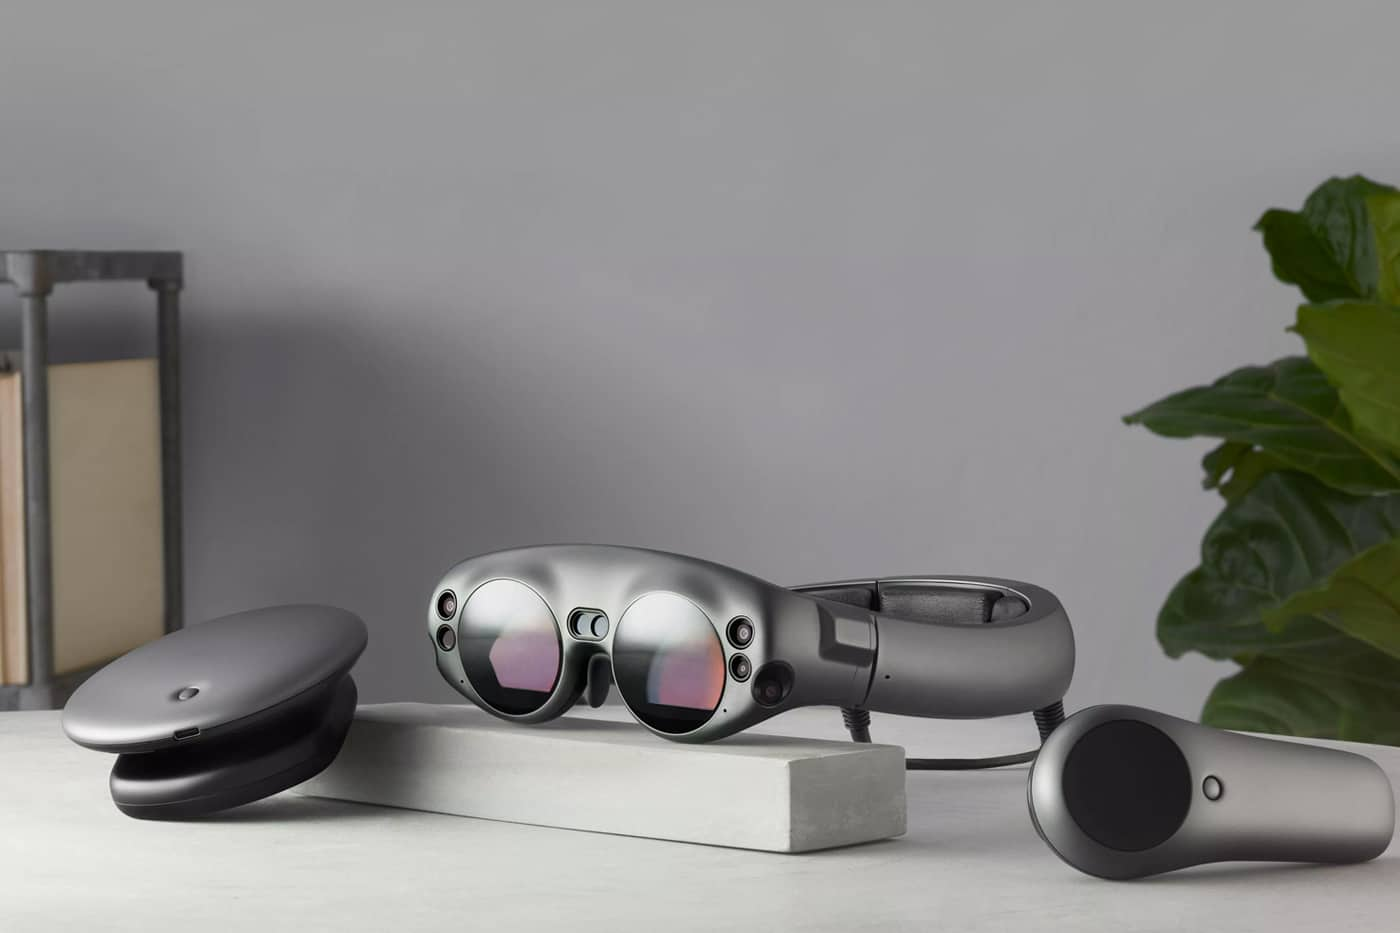 Magic Leap One on Desk